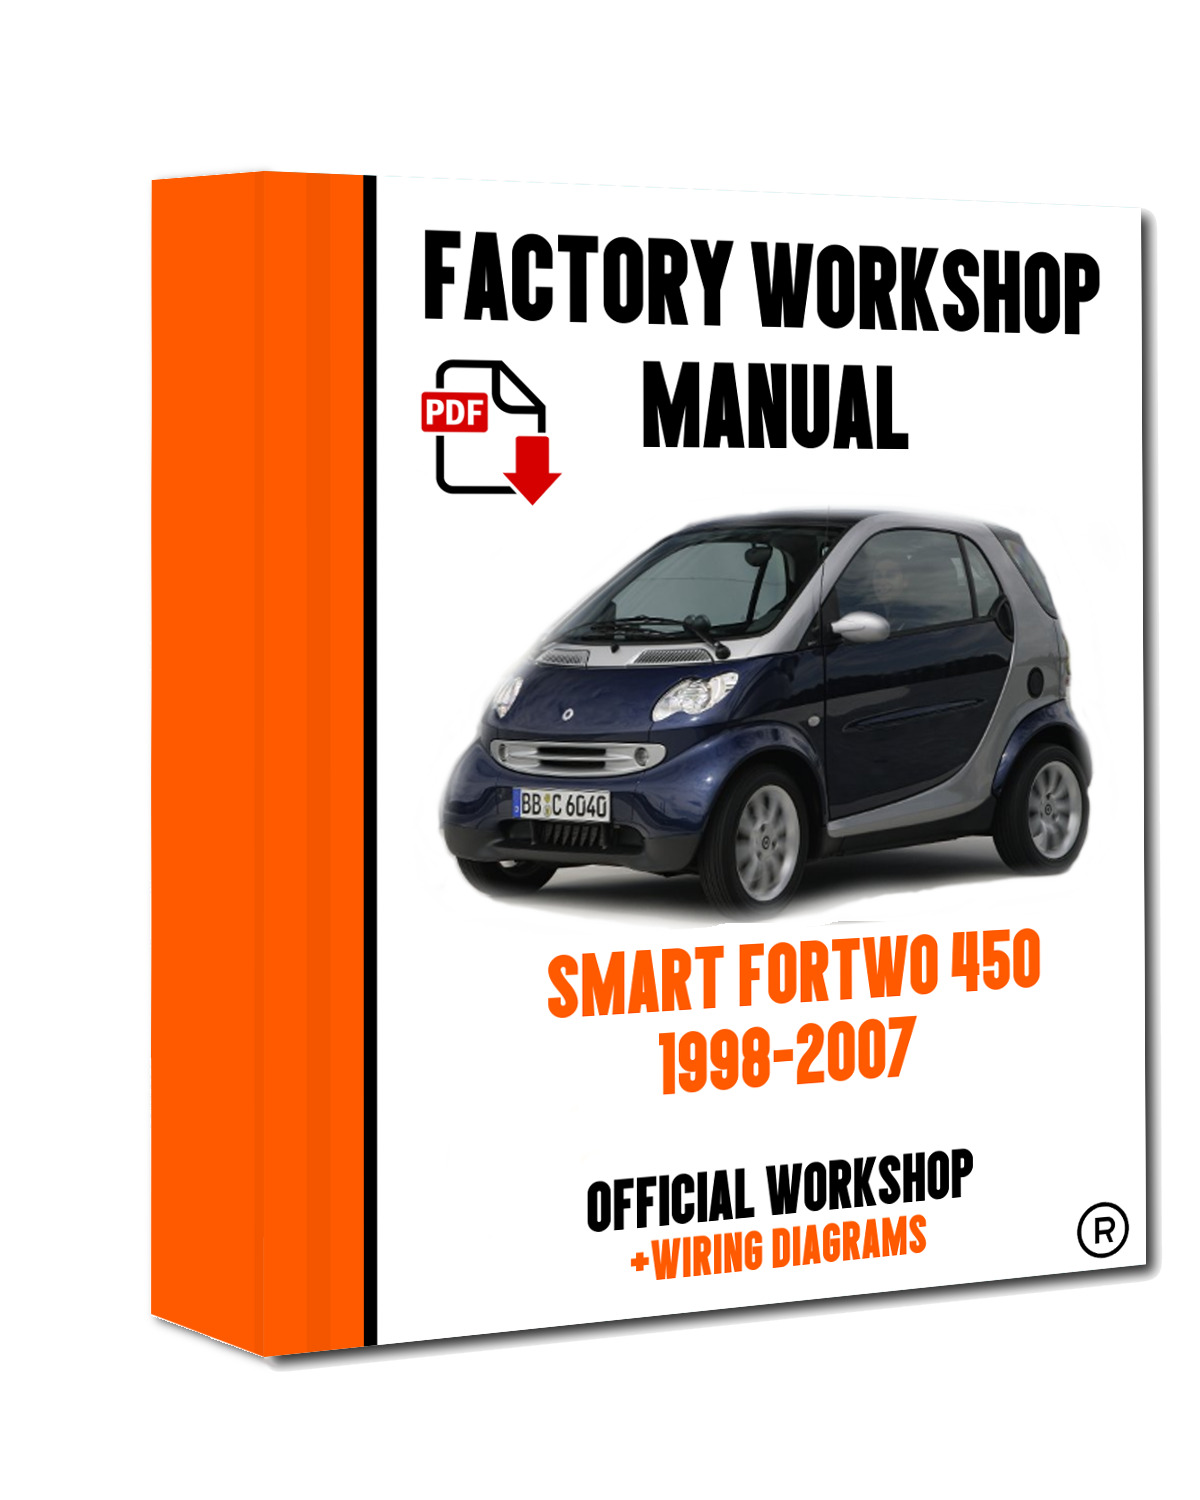 official workshop manual service repair smart fortwo 450 451 1998 rh picclick co uk 2008 smart fortwo 451 introduction in service manual.pdf smart fortwo 451 service manual